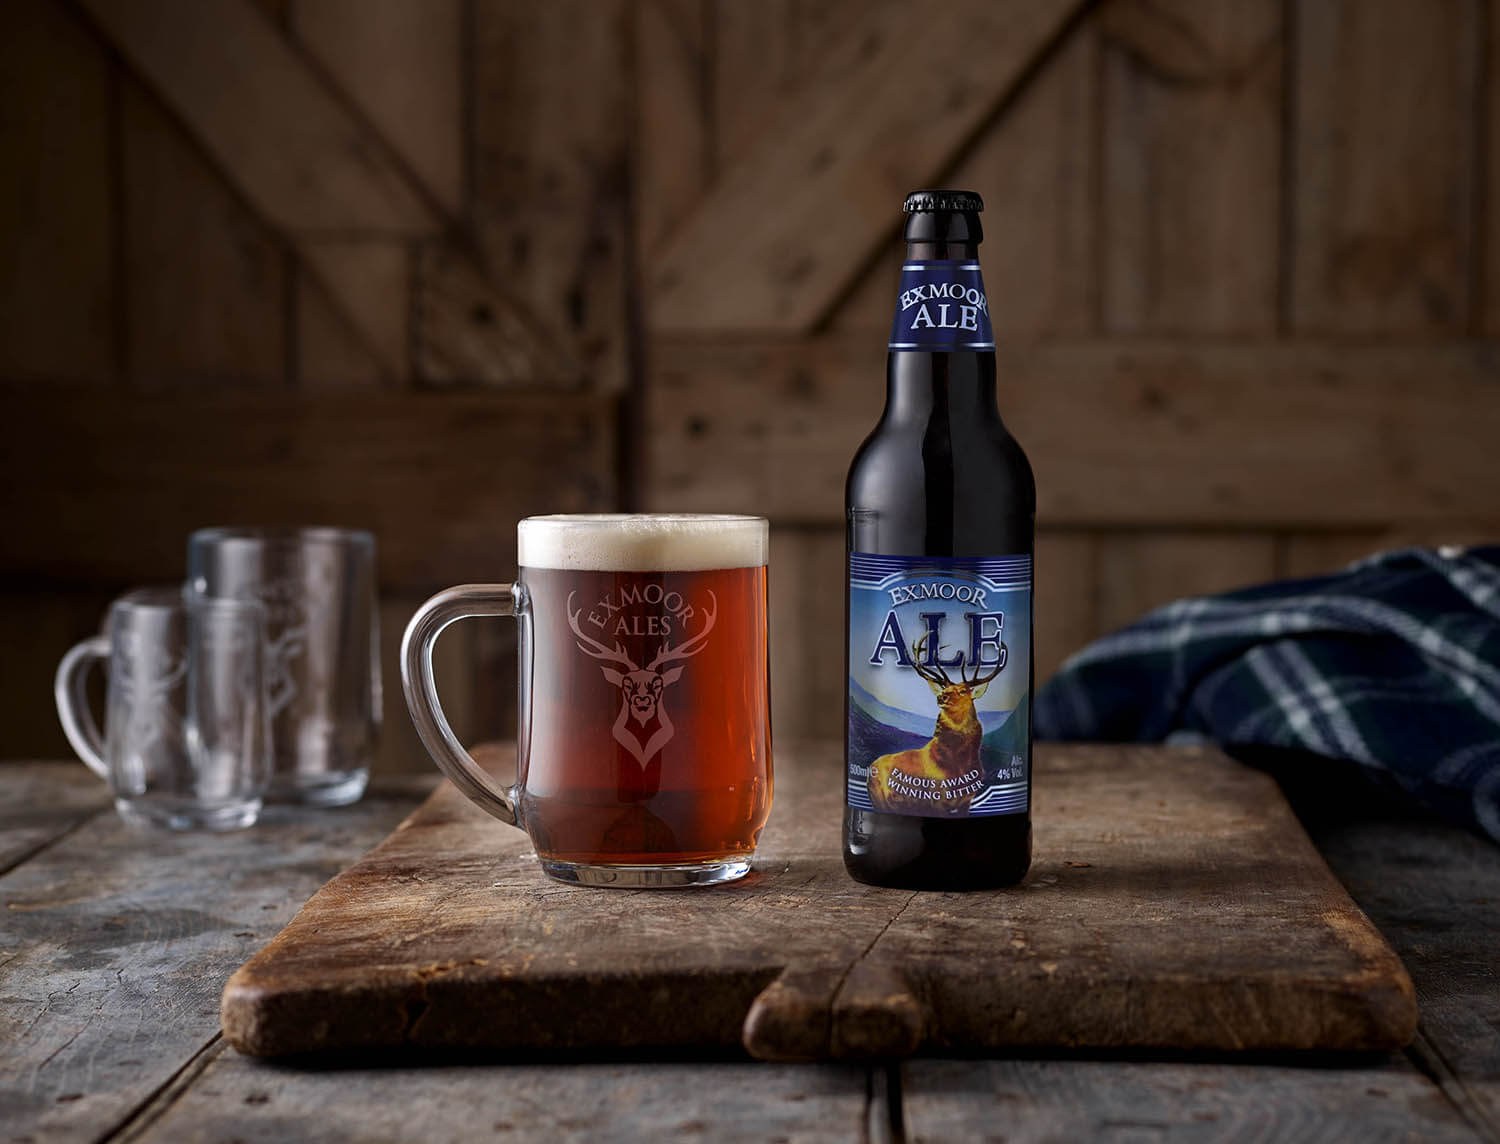 Bottle of Exmoor Ale and a full glass tankard